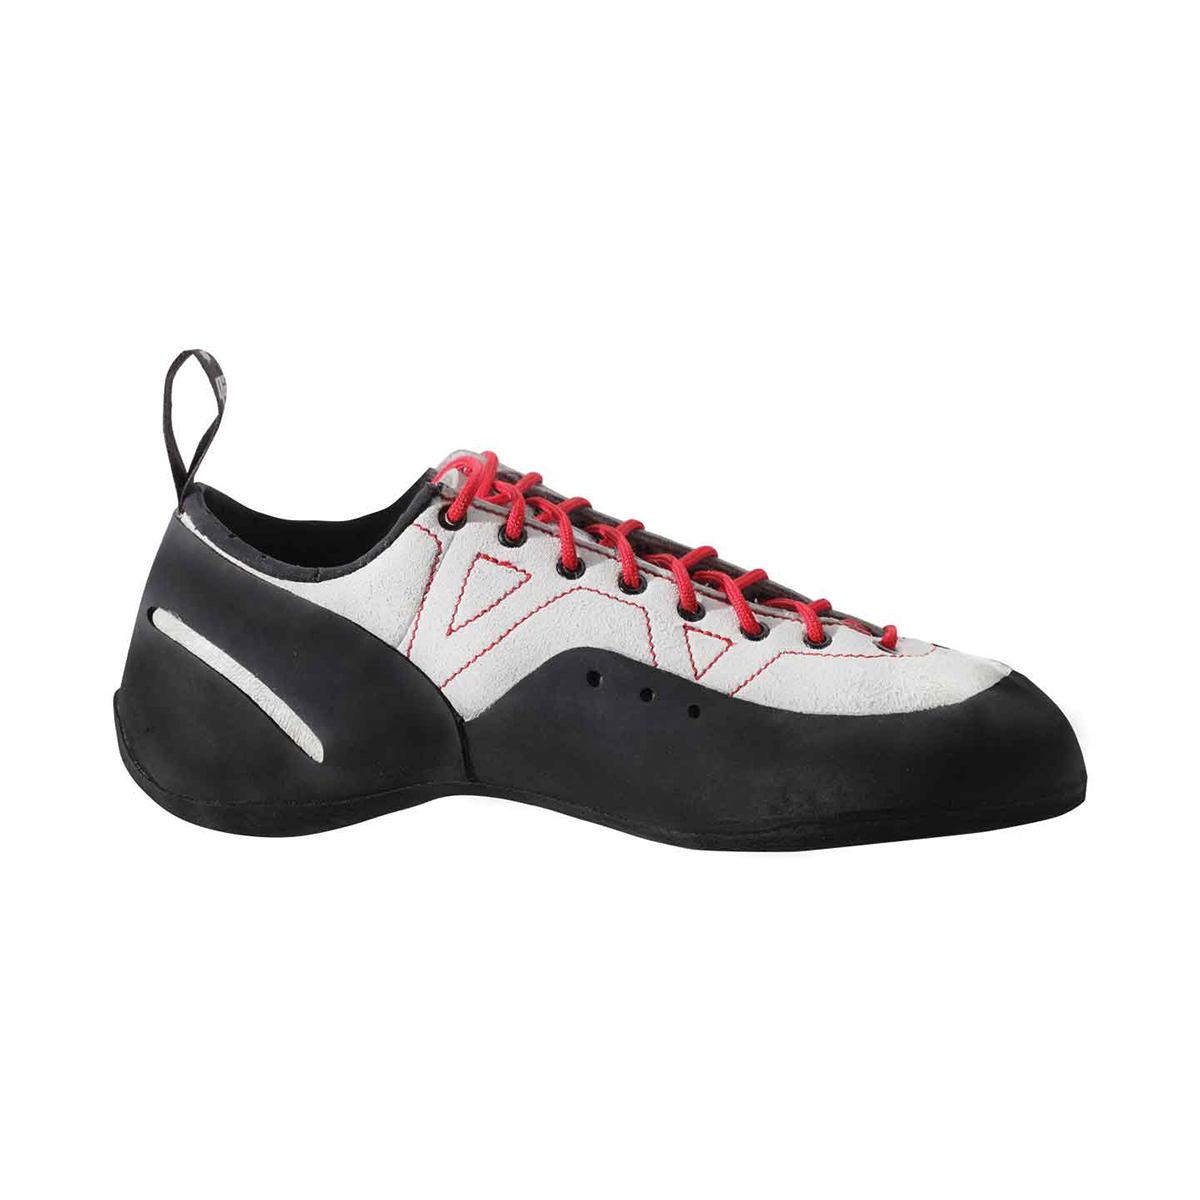 Velcro Or Lace Climbing Shoes